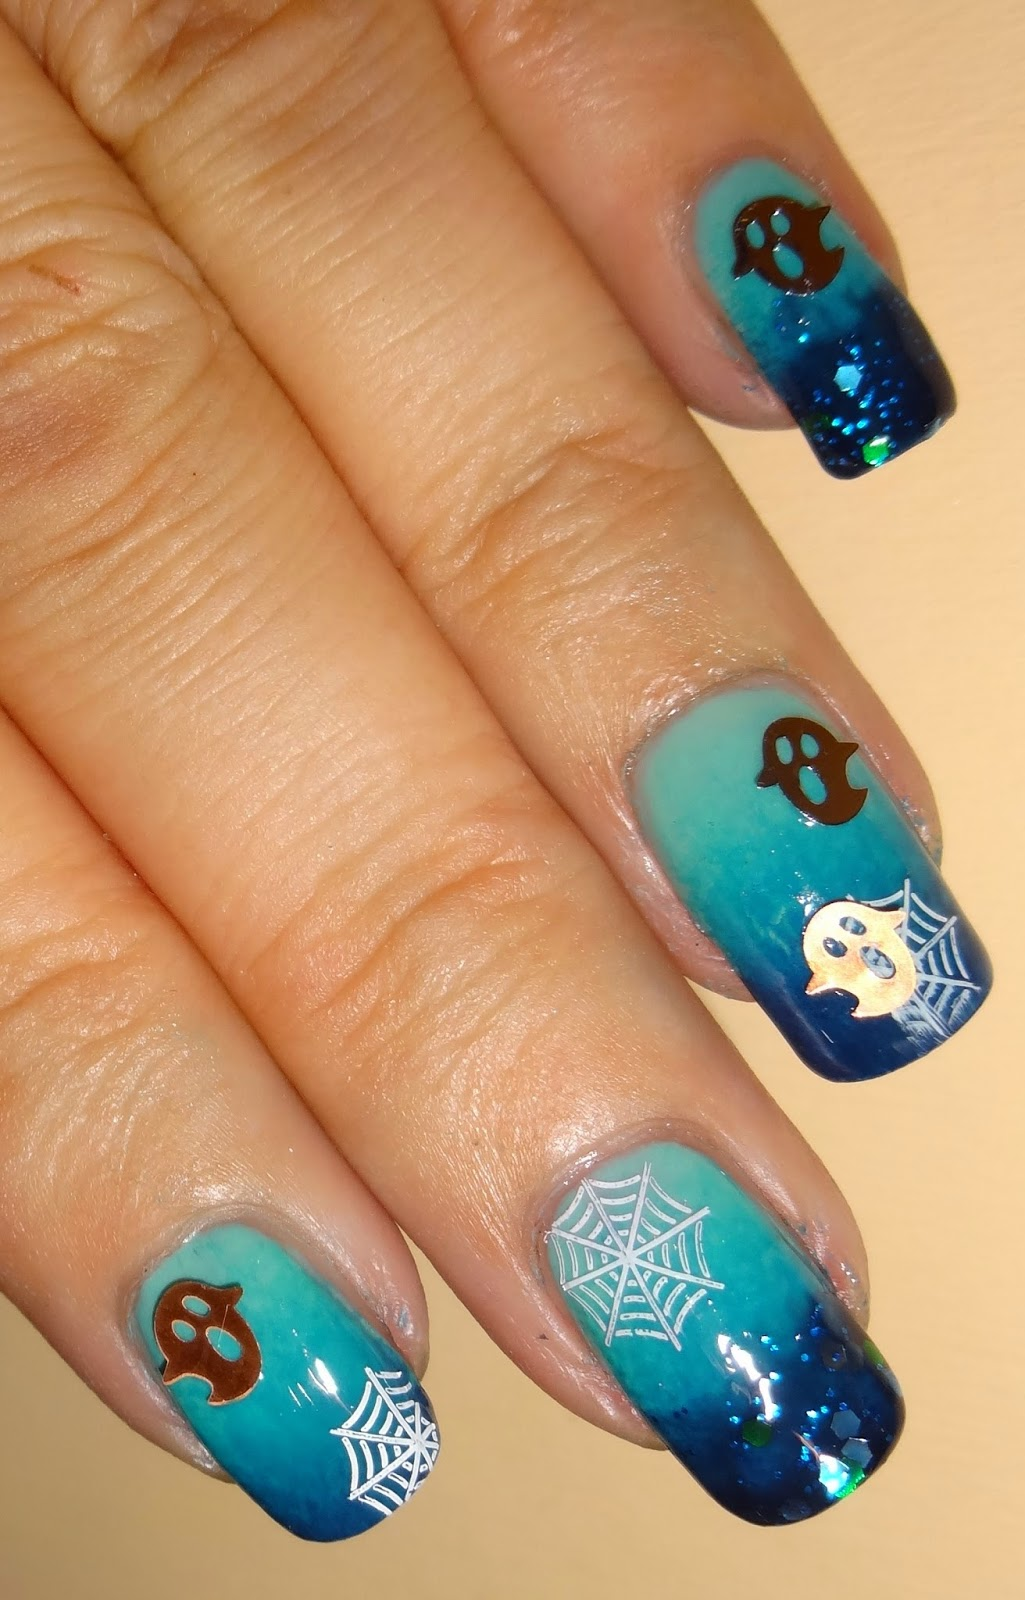 Wendy S Delights Metallic Ghost Decals From Charlies Nail Art